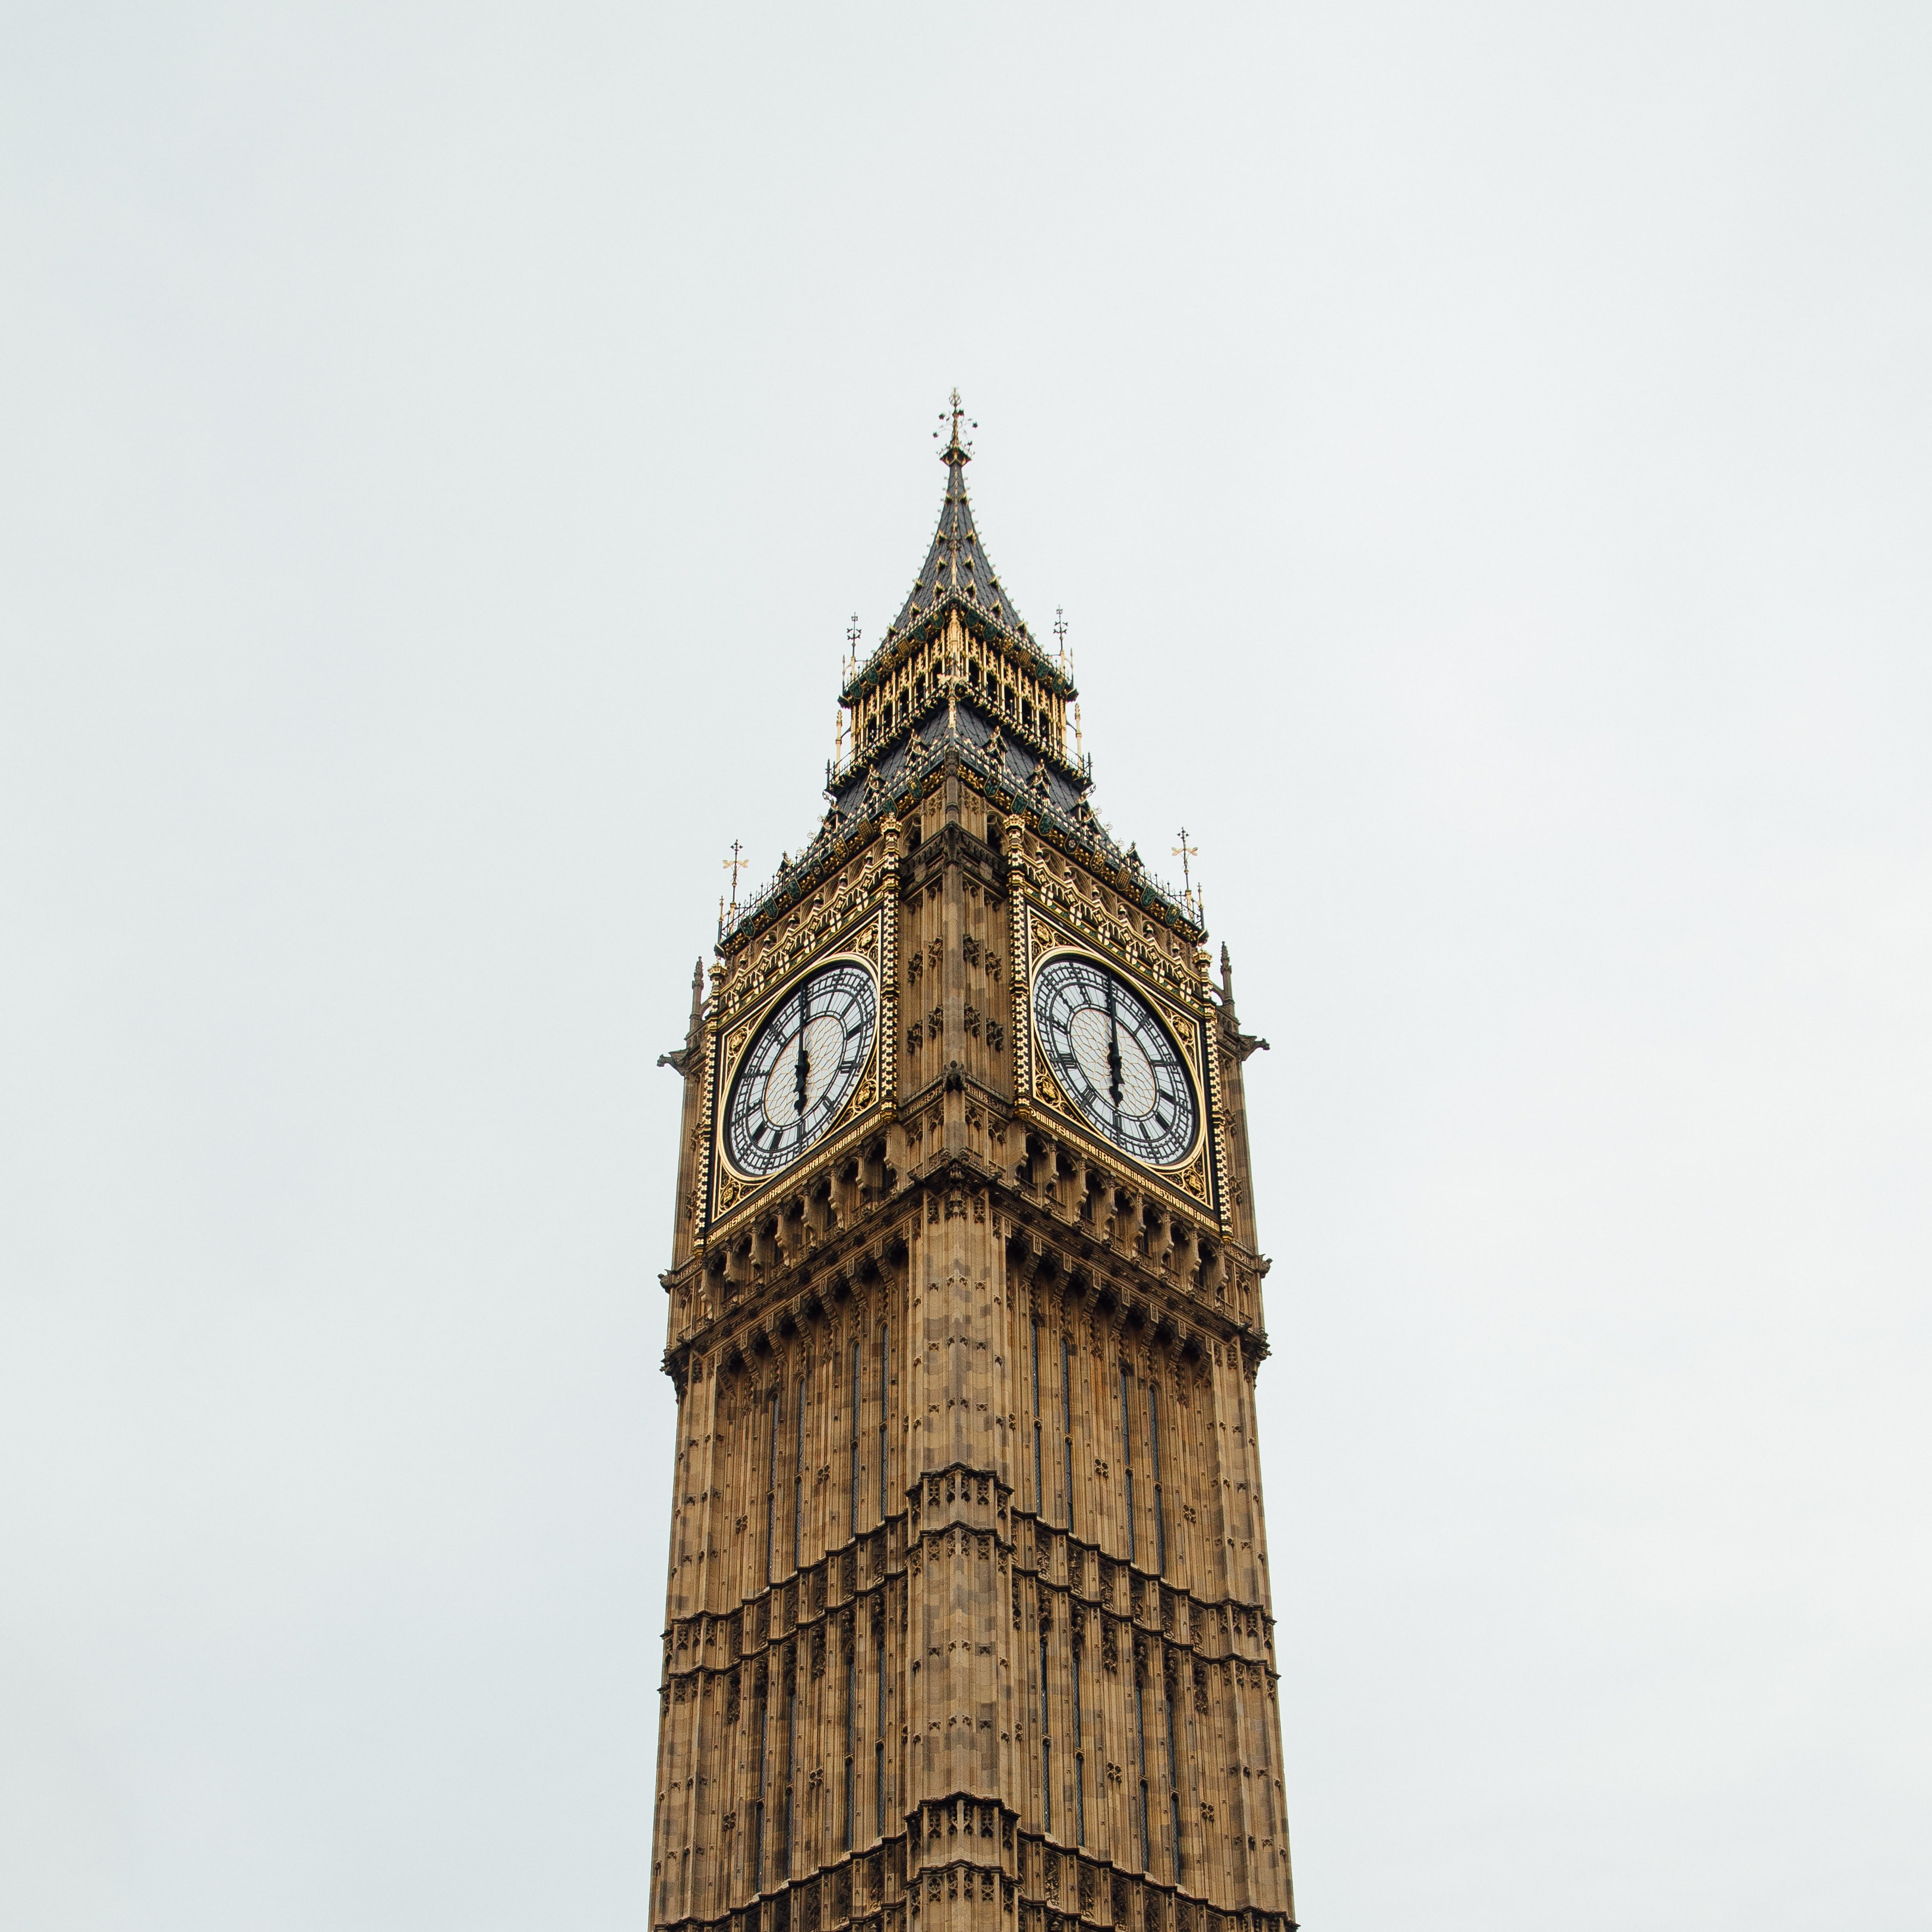 architectural photography of Big Ben